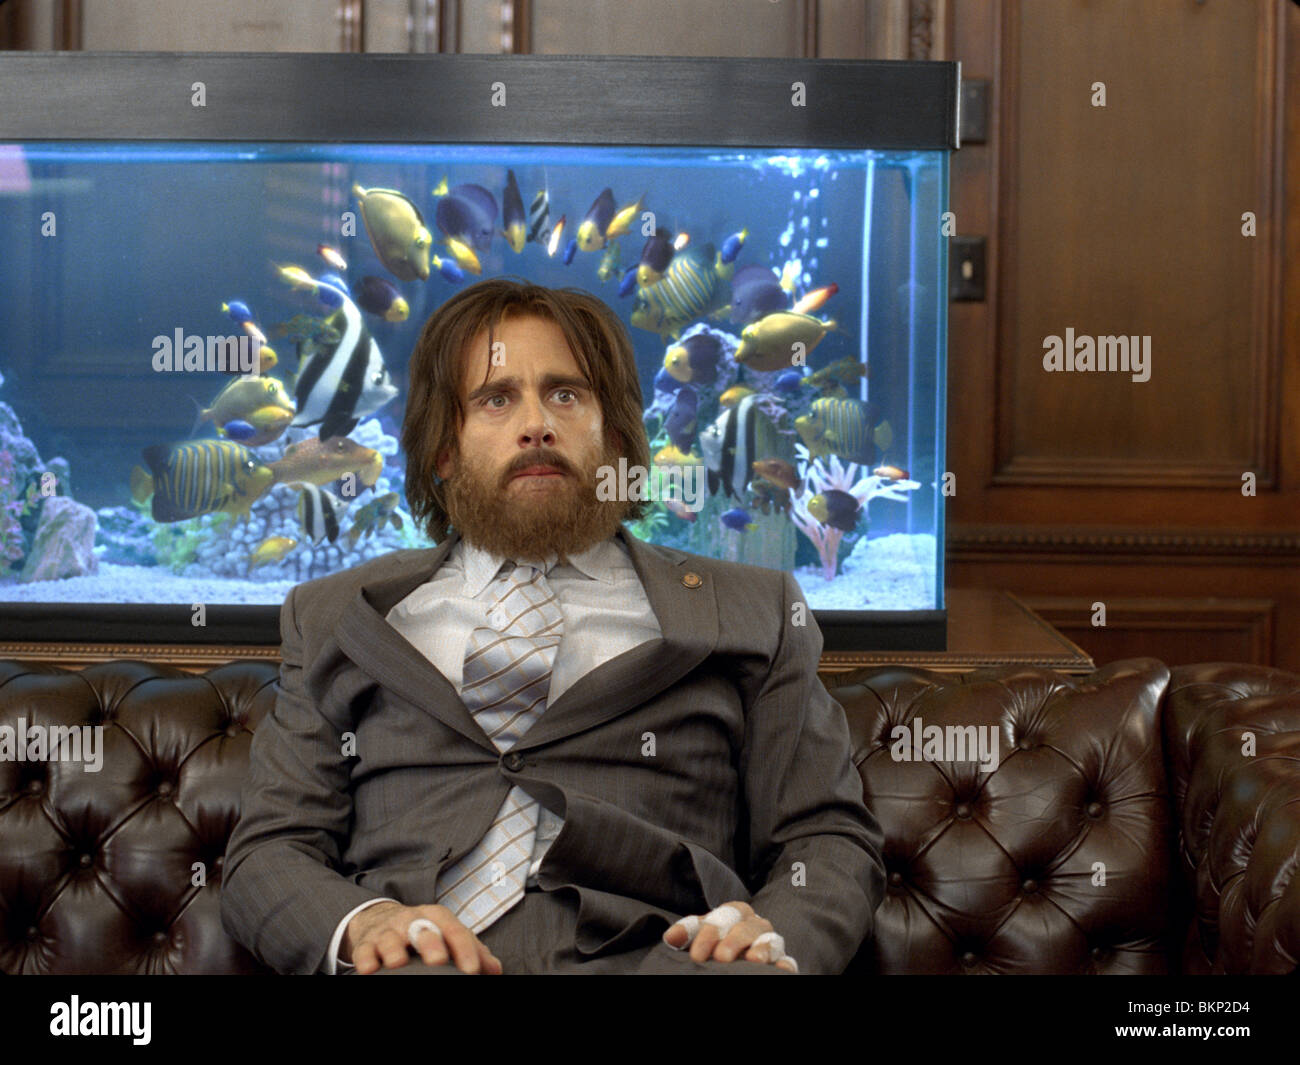 EVAN ALMIGHTY (2007) STEVE CARELL EVAL 001-03 - Stock Image